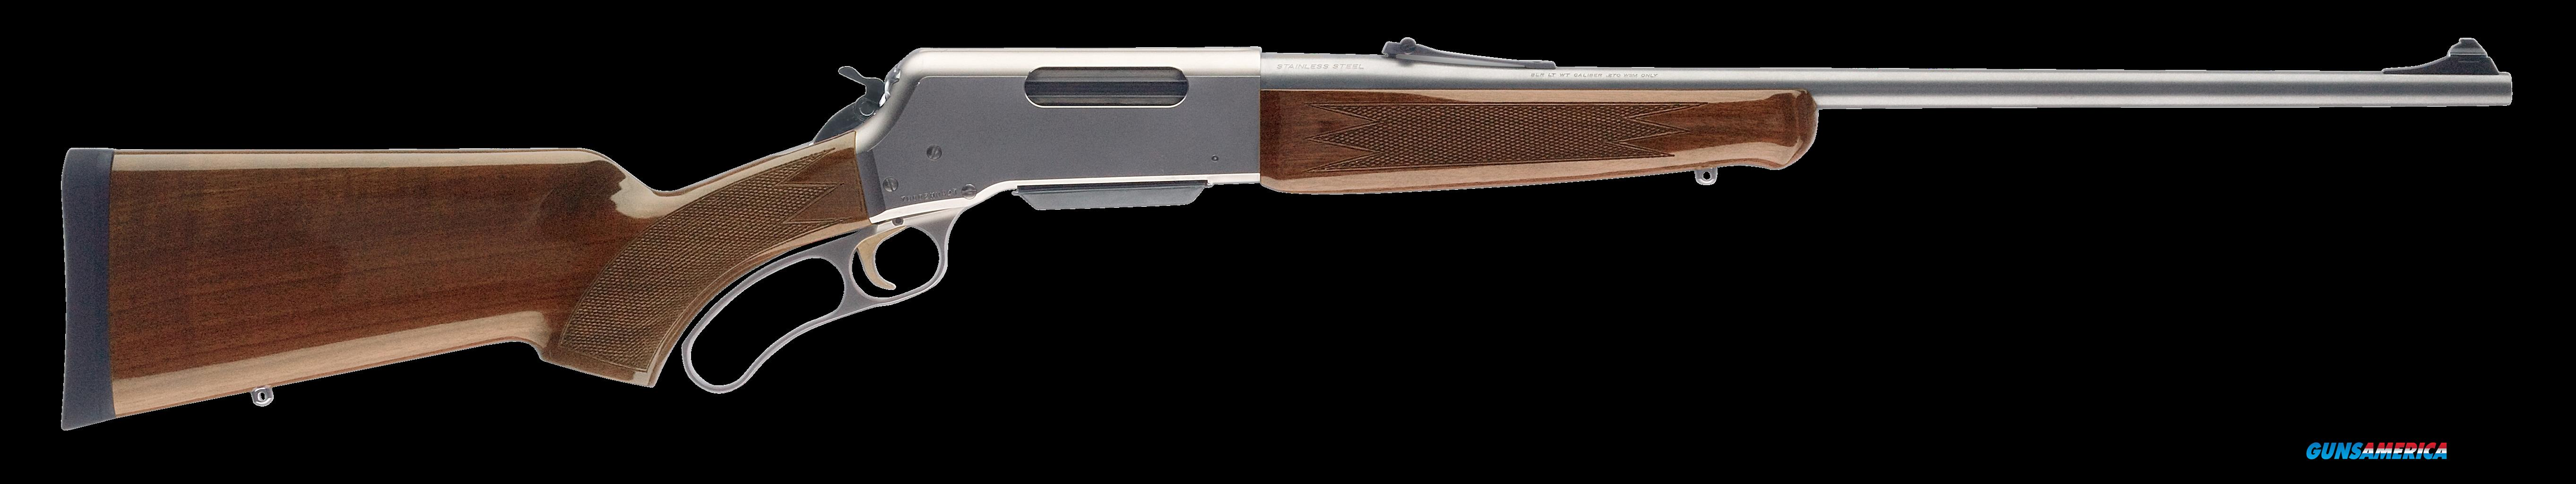 "Browning 034018108 BLR Lightweight Stainless with Pistol Grip Lever 223 Remington 20"" 4+1 Walnut  Guns > Rifles > Browning Rifles > Lever Action"